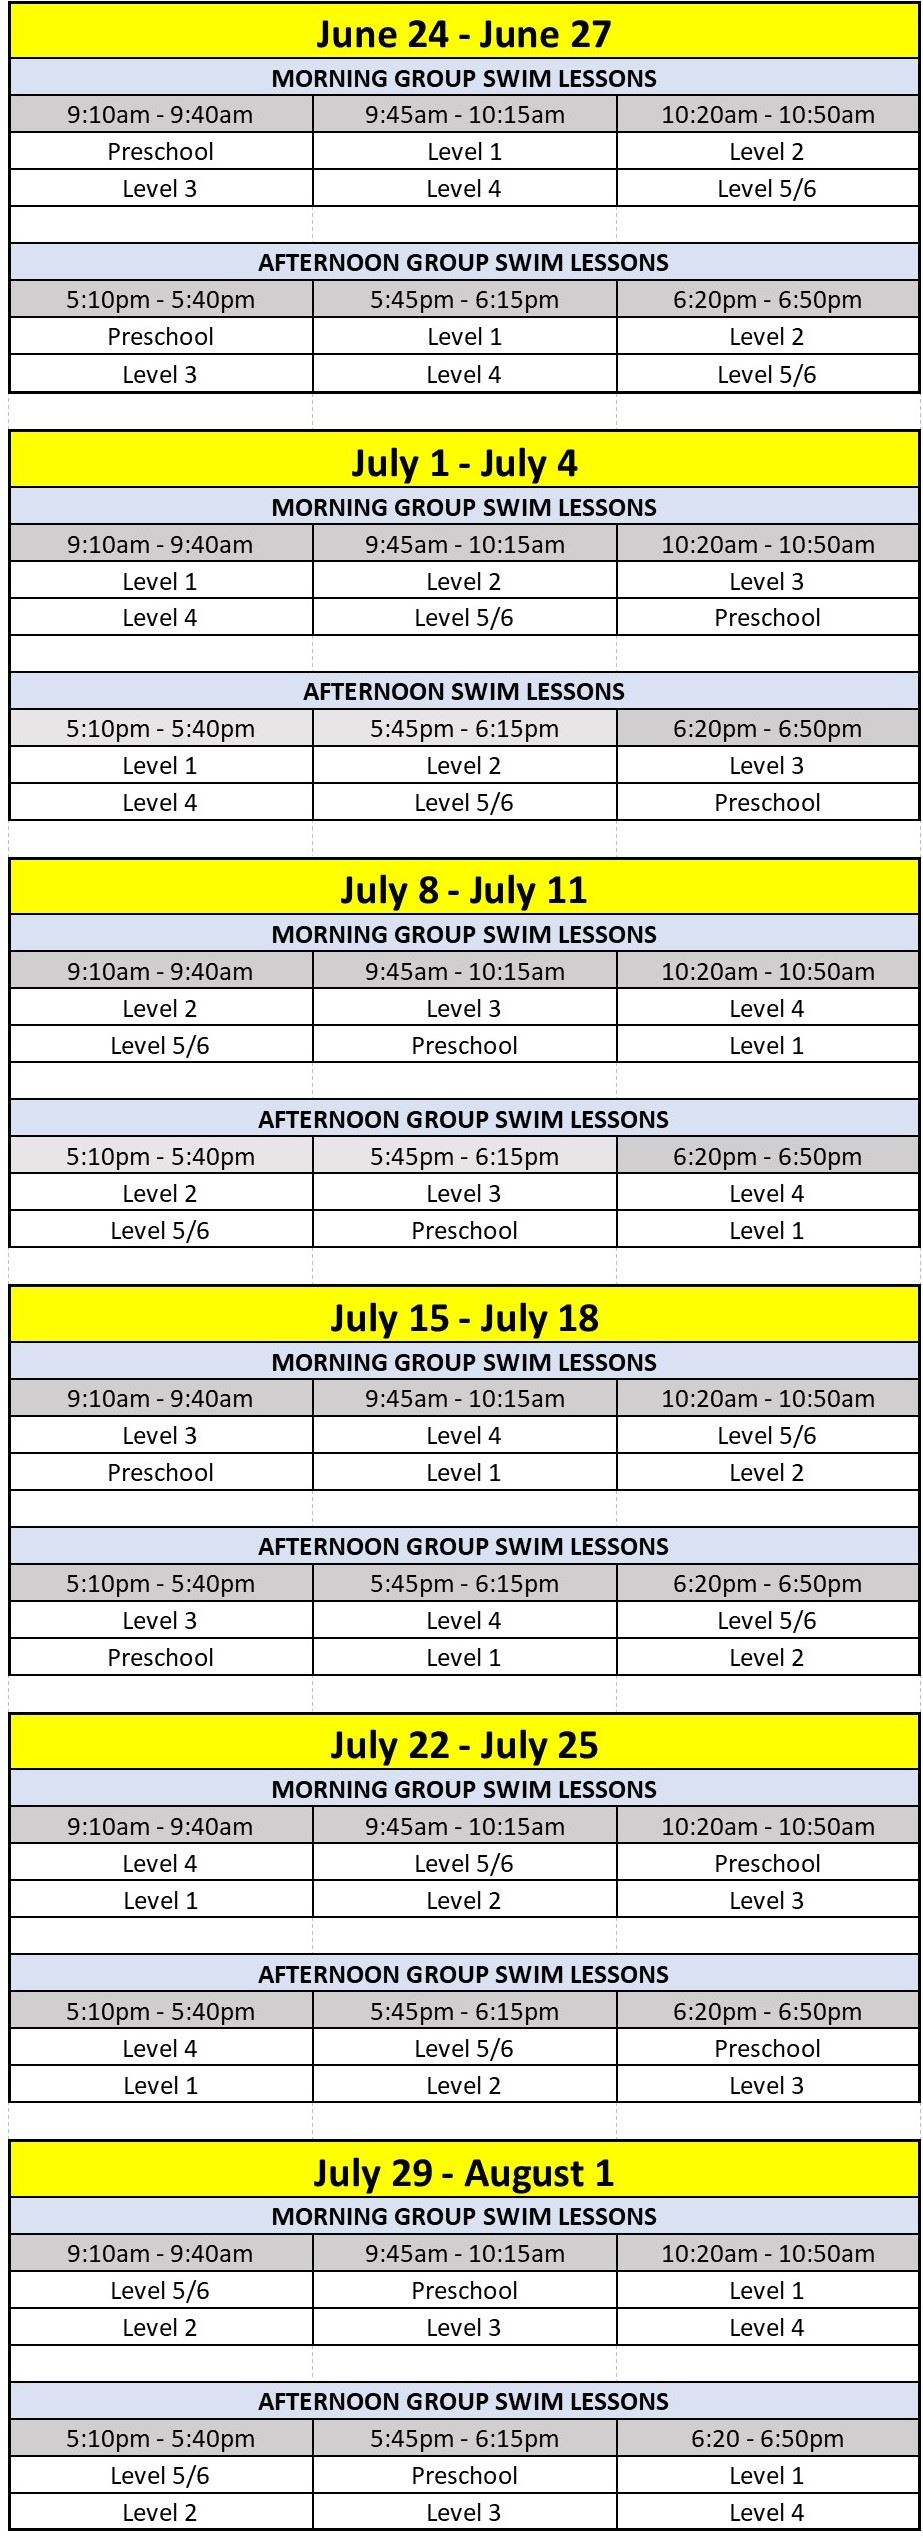 Group Lesson Schedule - June 24 to June 27, 2019 (JPG)